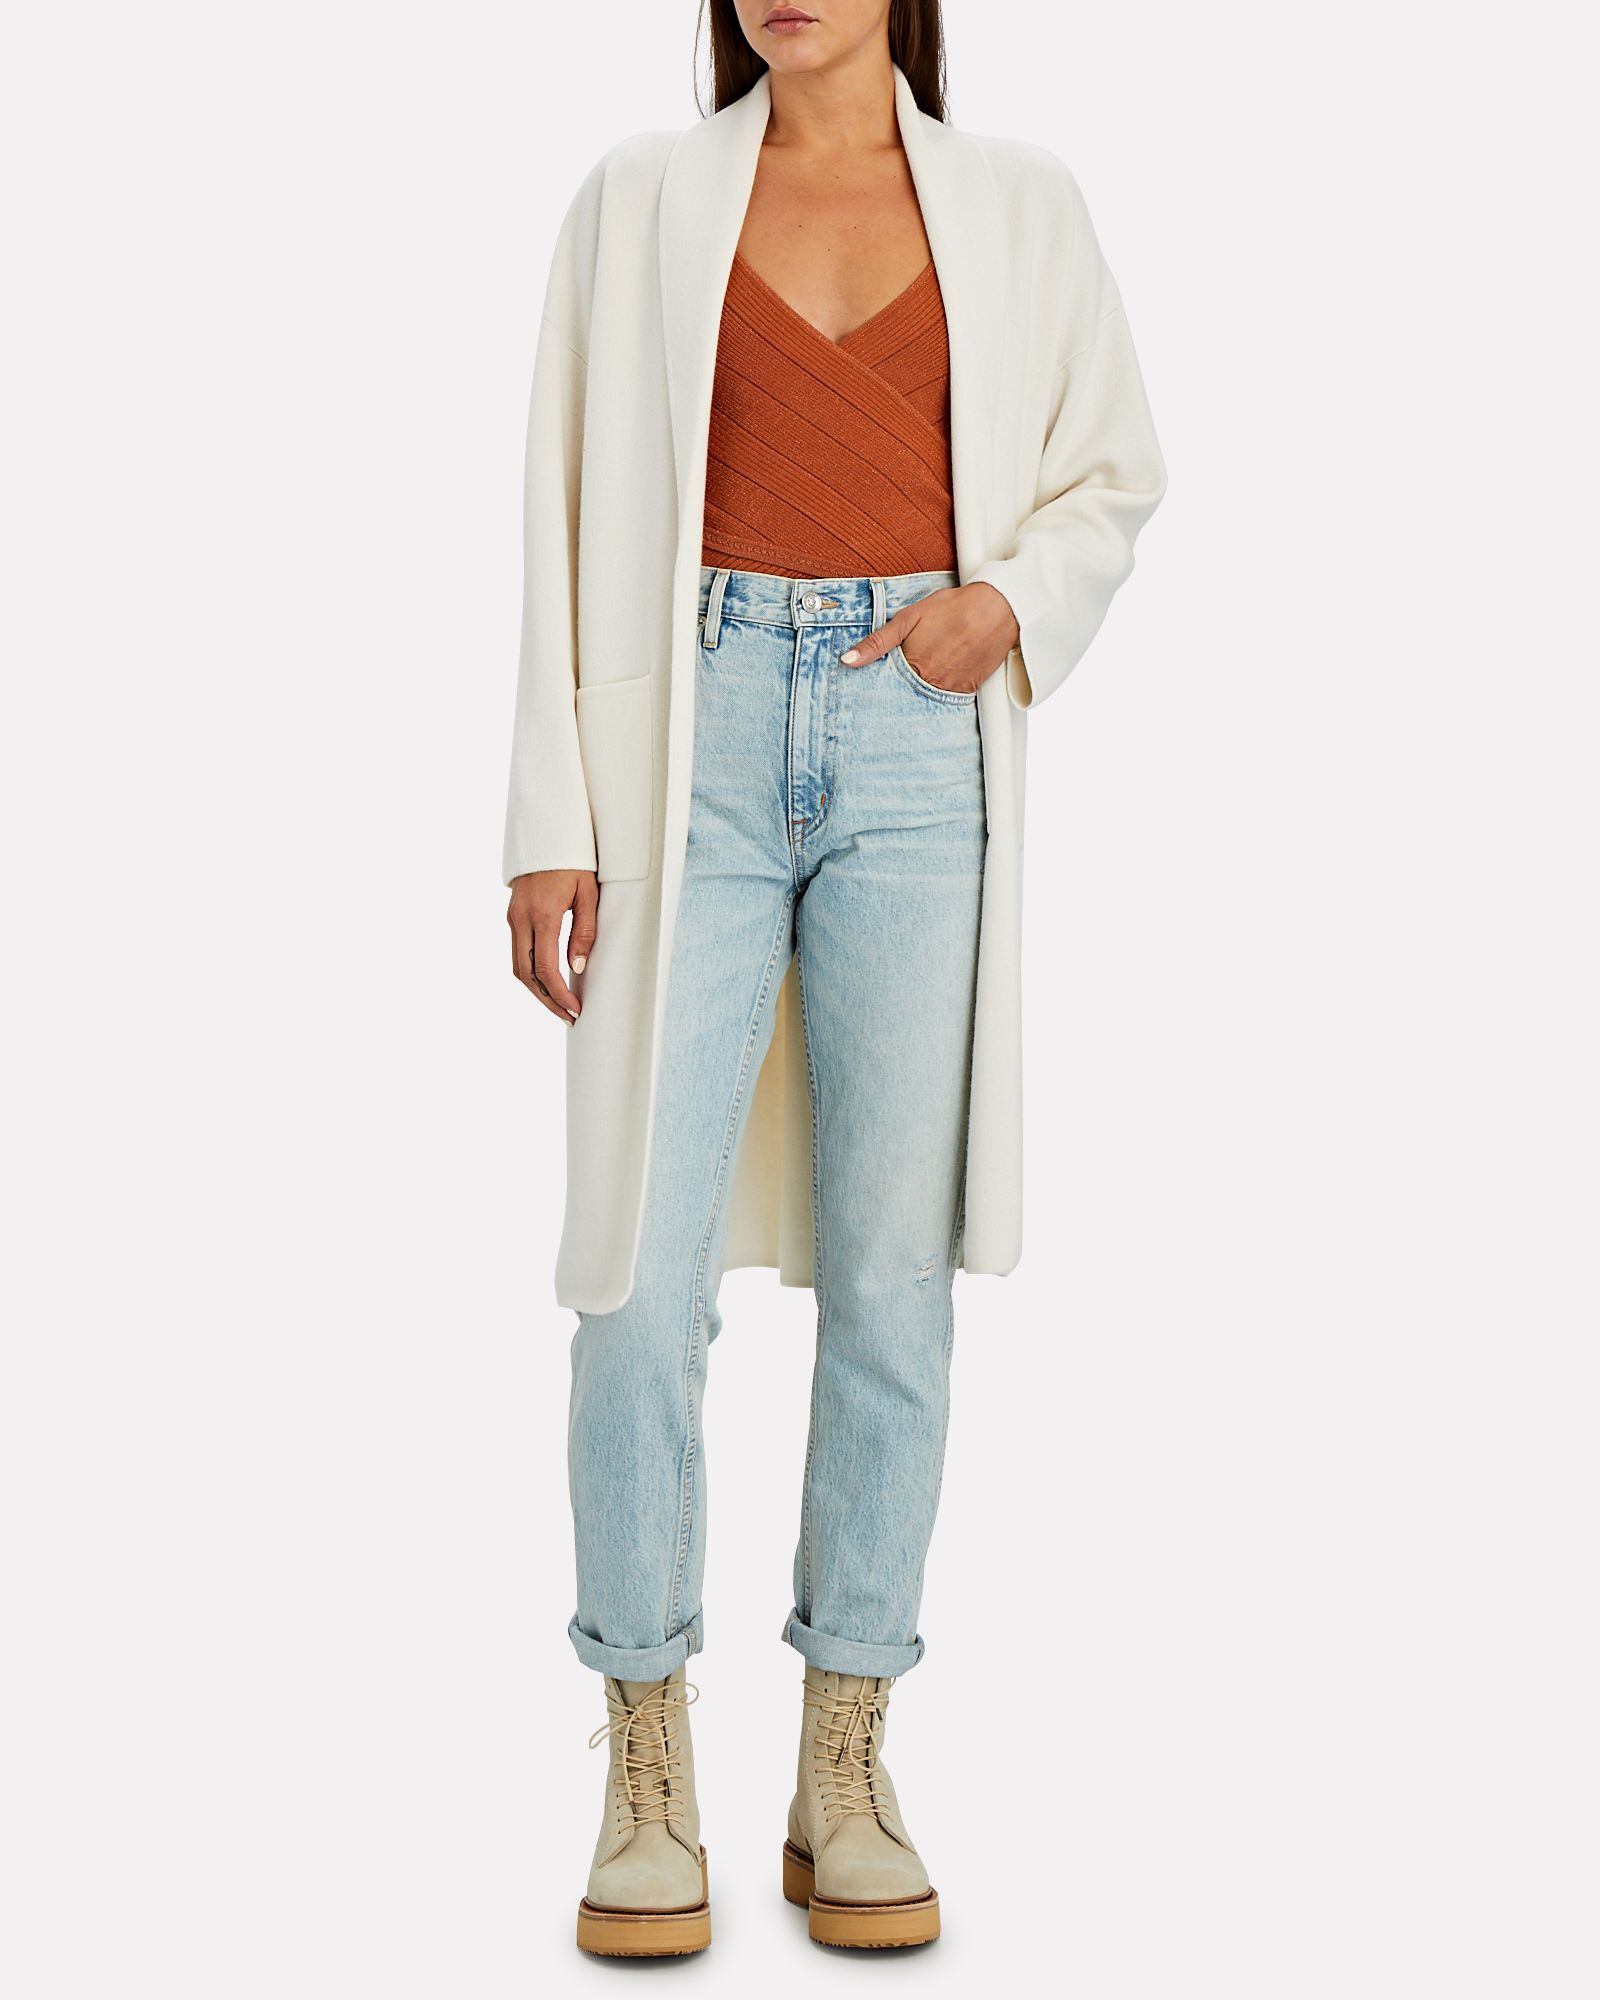 Luka Wool-Cashmere Duster Cardigan, IVORY, hi-res